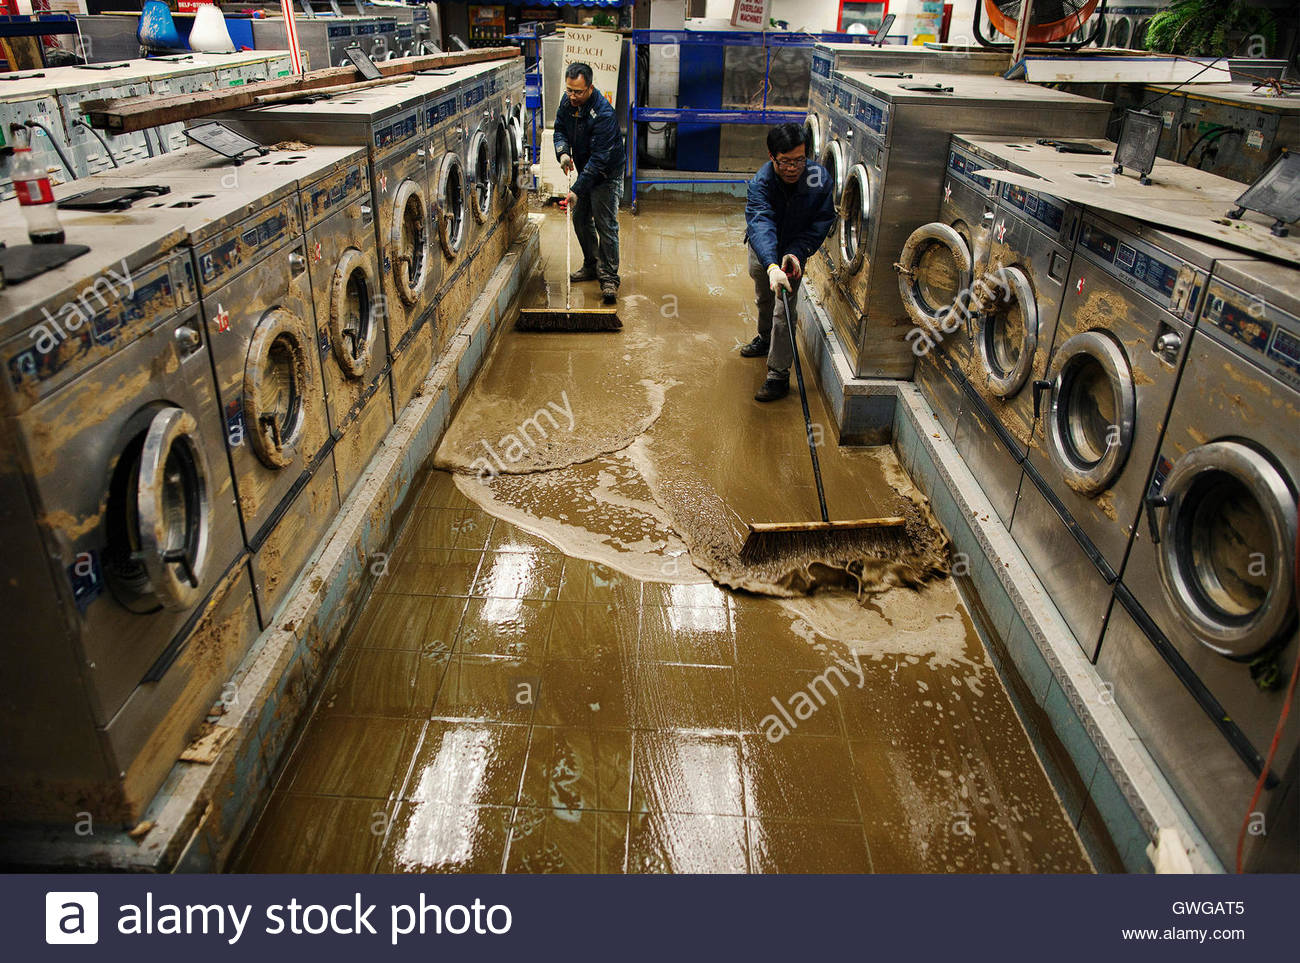 eddie-liu-r-uses-a-broom-to-clean-up-mud-and-water-from-extensive-gwgat5